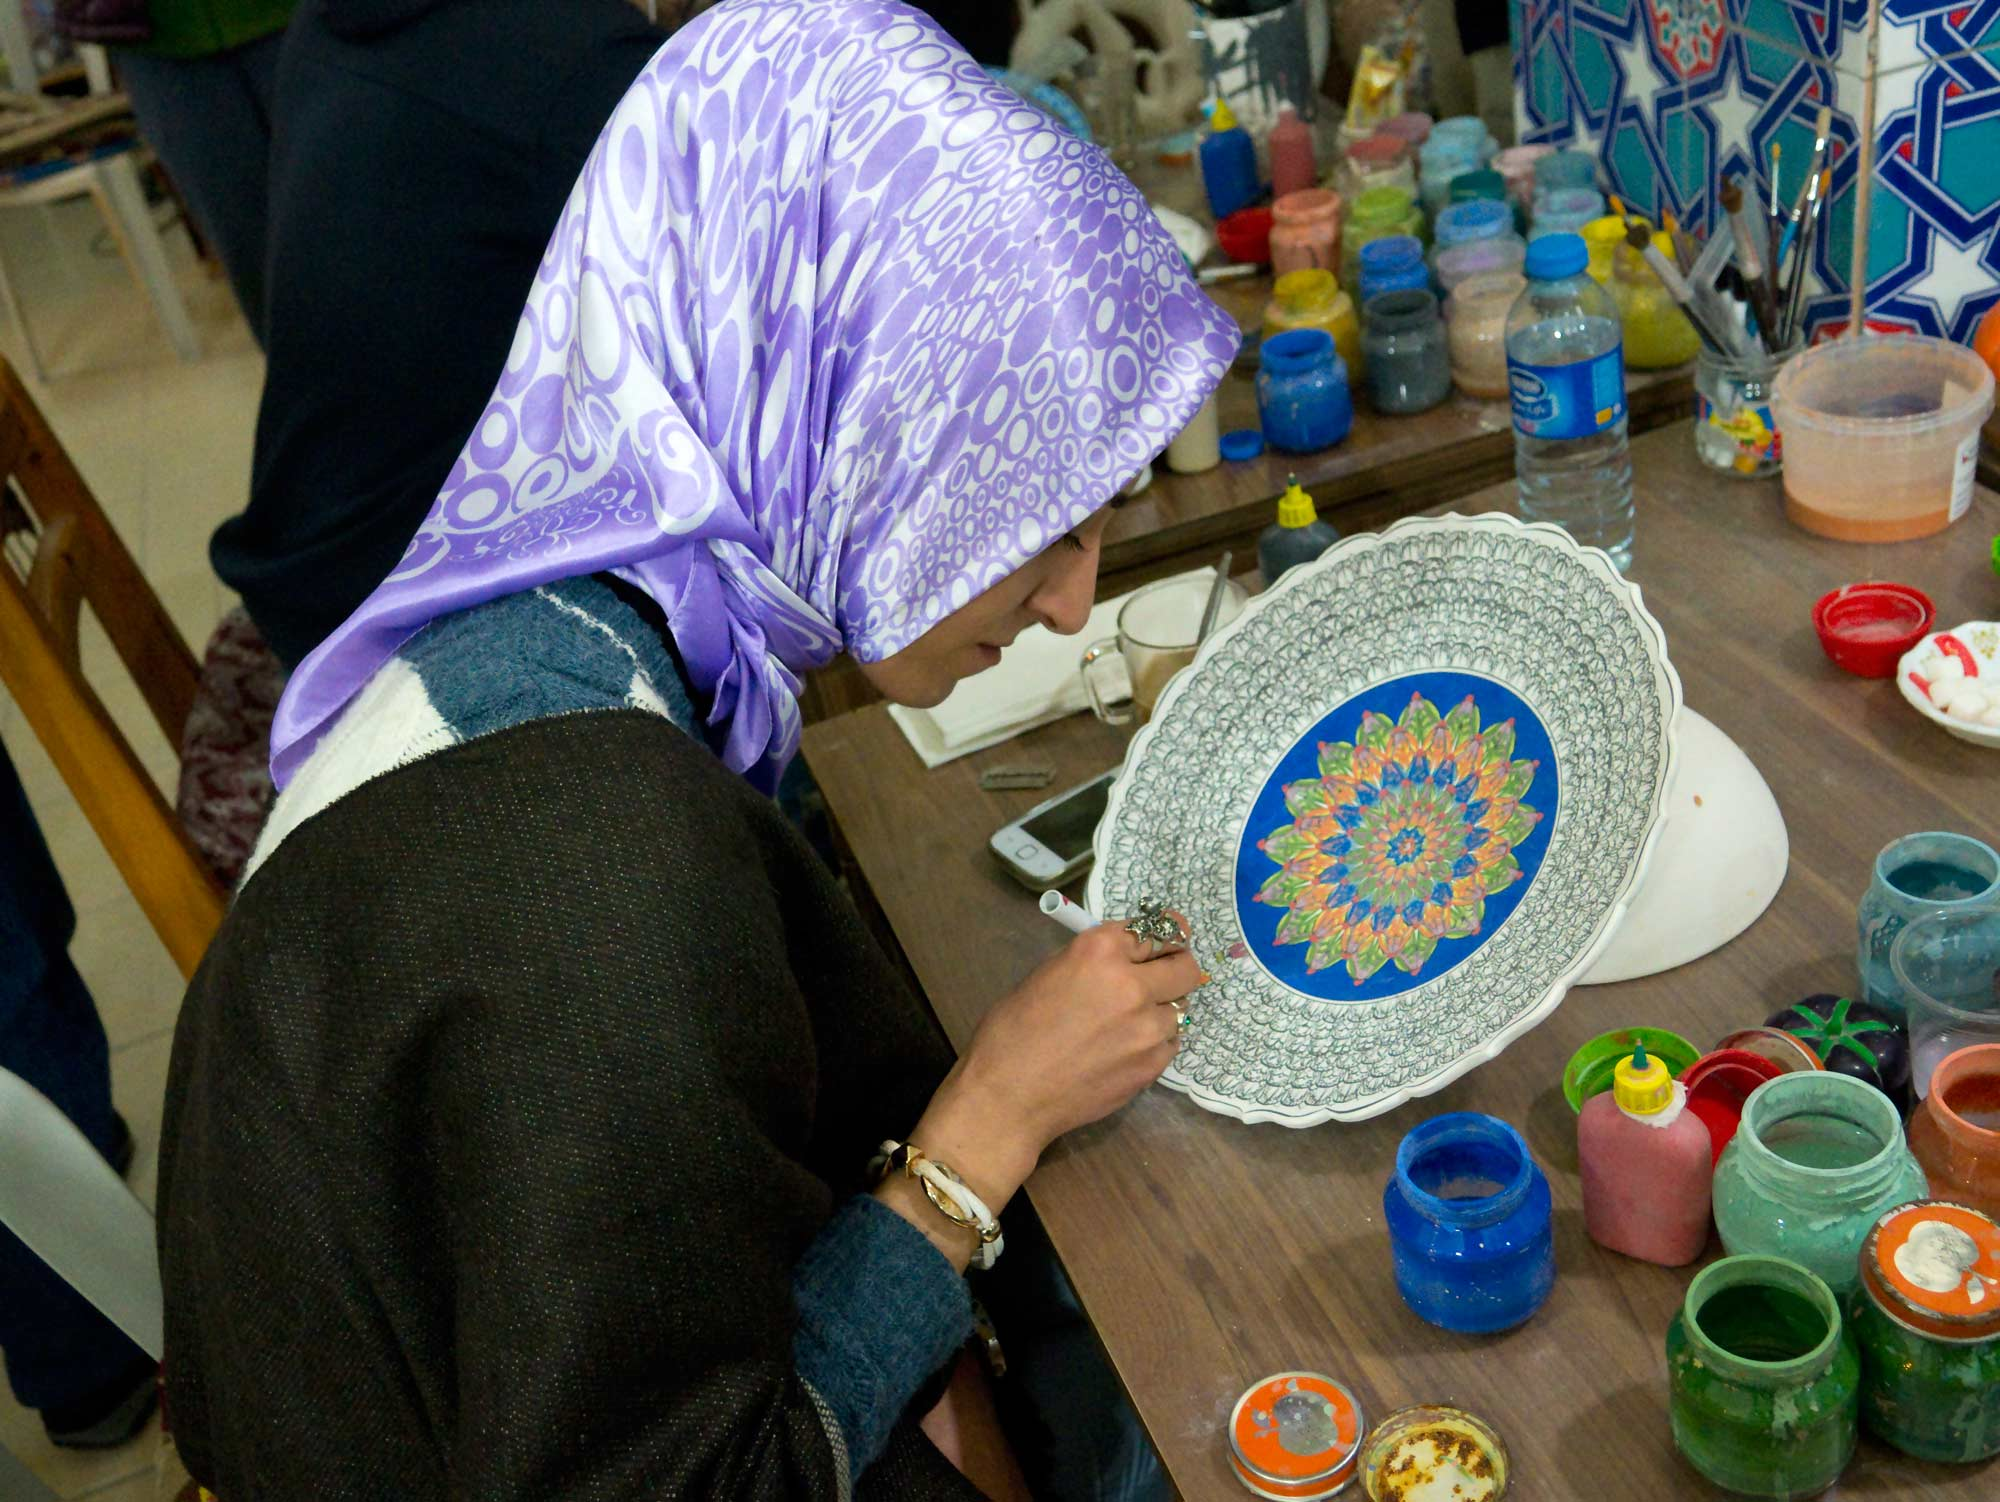 travel-turk-workshop-platepaint.jpg